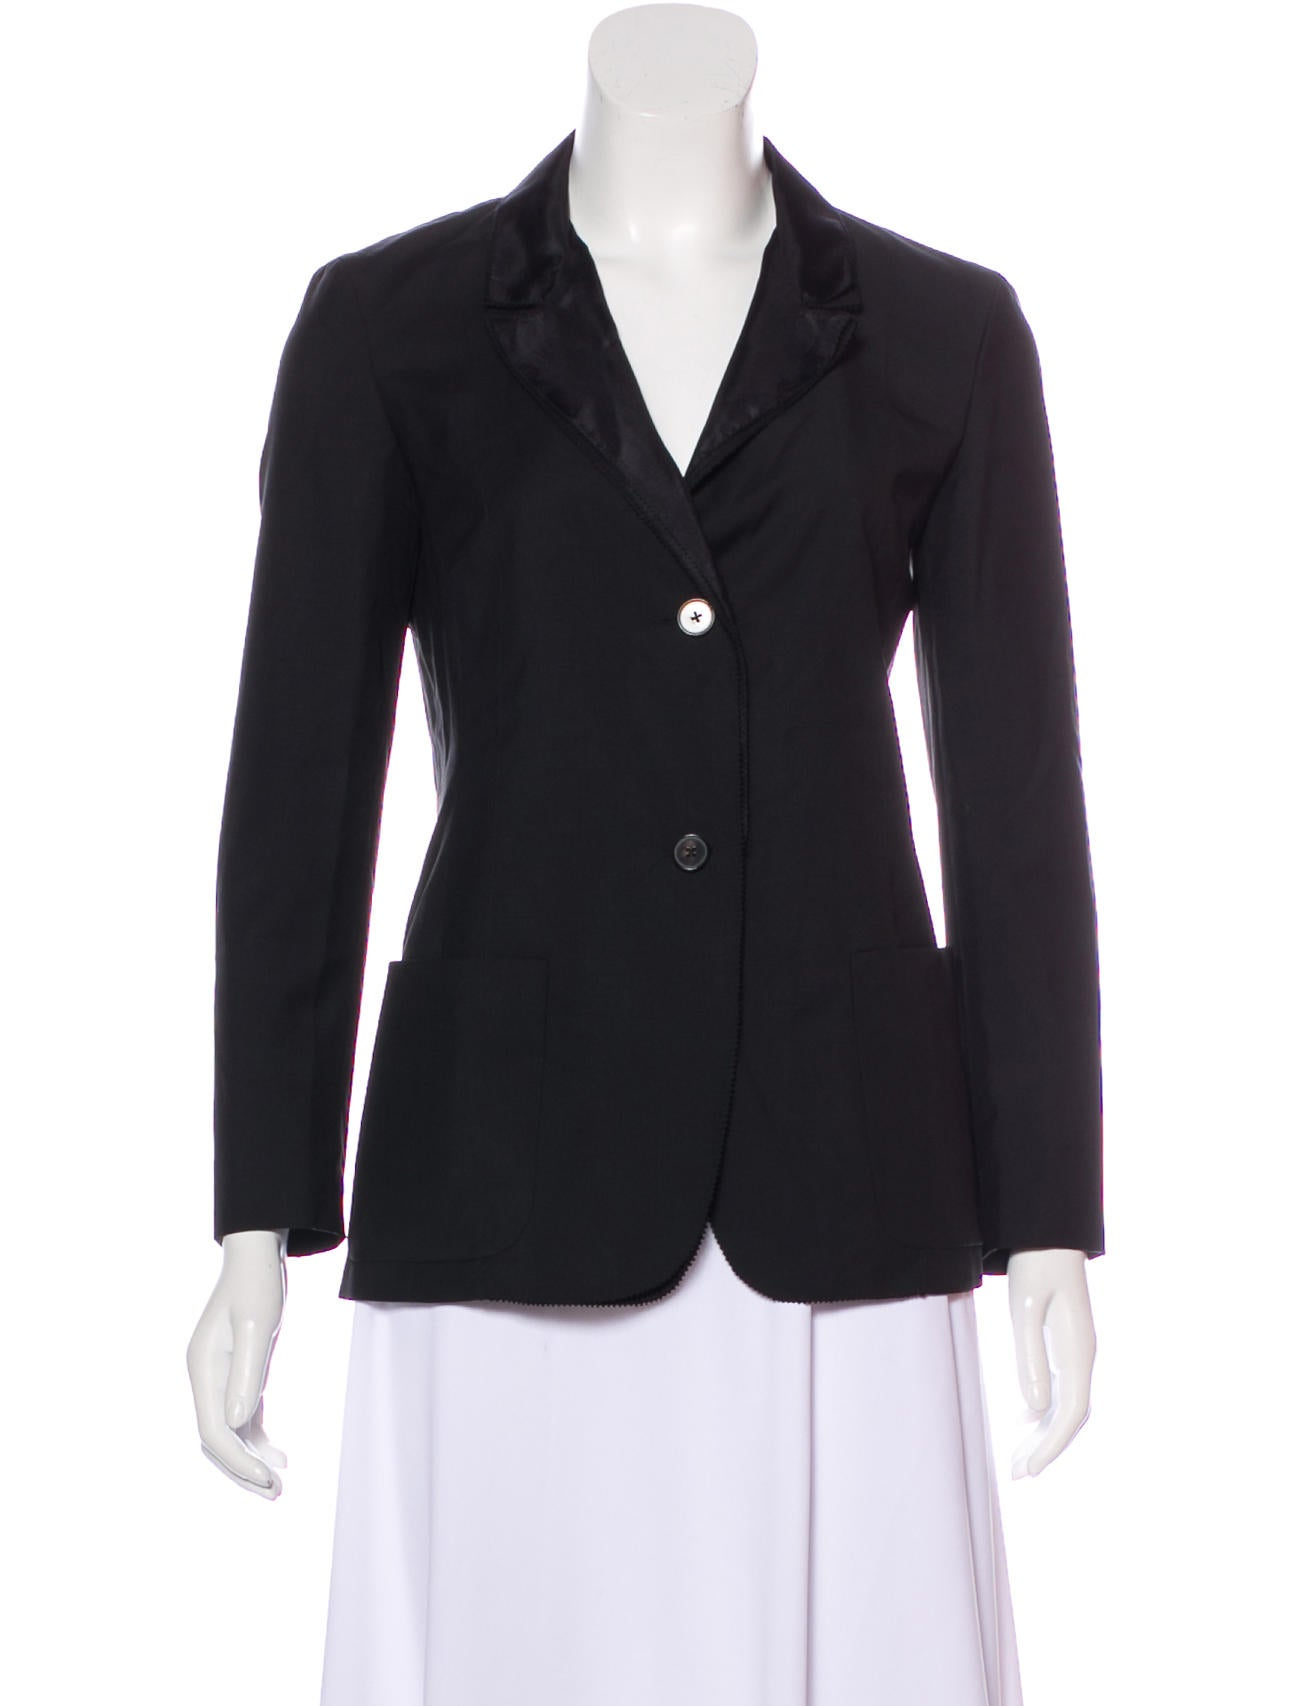 Outlet Factory Outlet Clearance Best Wholesale Jil Sander Notch-Lapel Blazer w/ Tags Buy Cheap New Arrival TyVf4SF53C